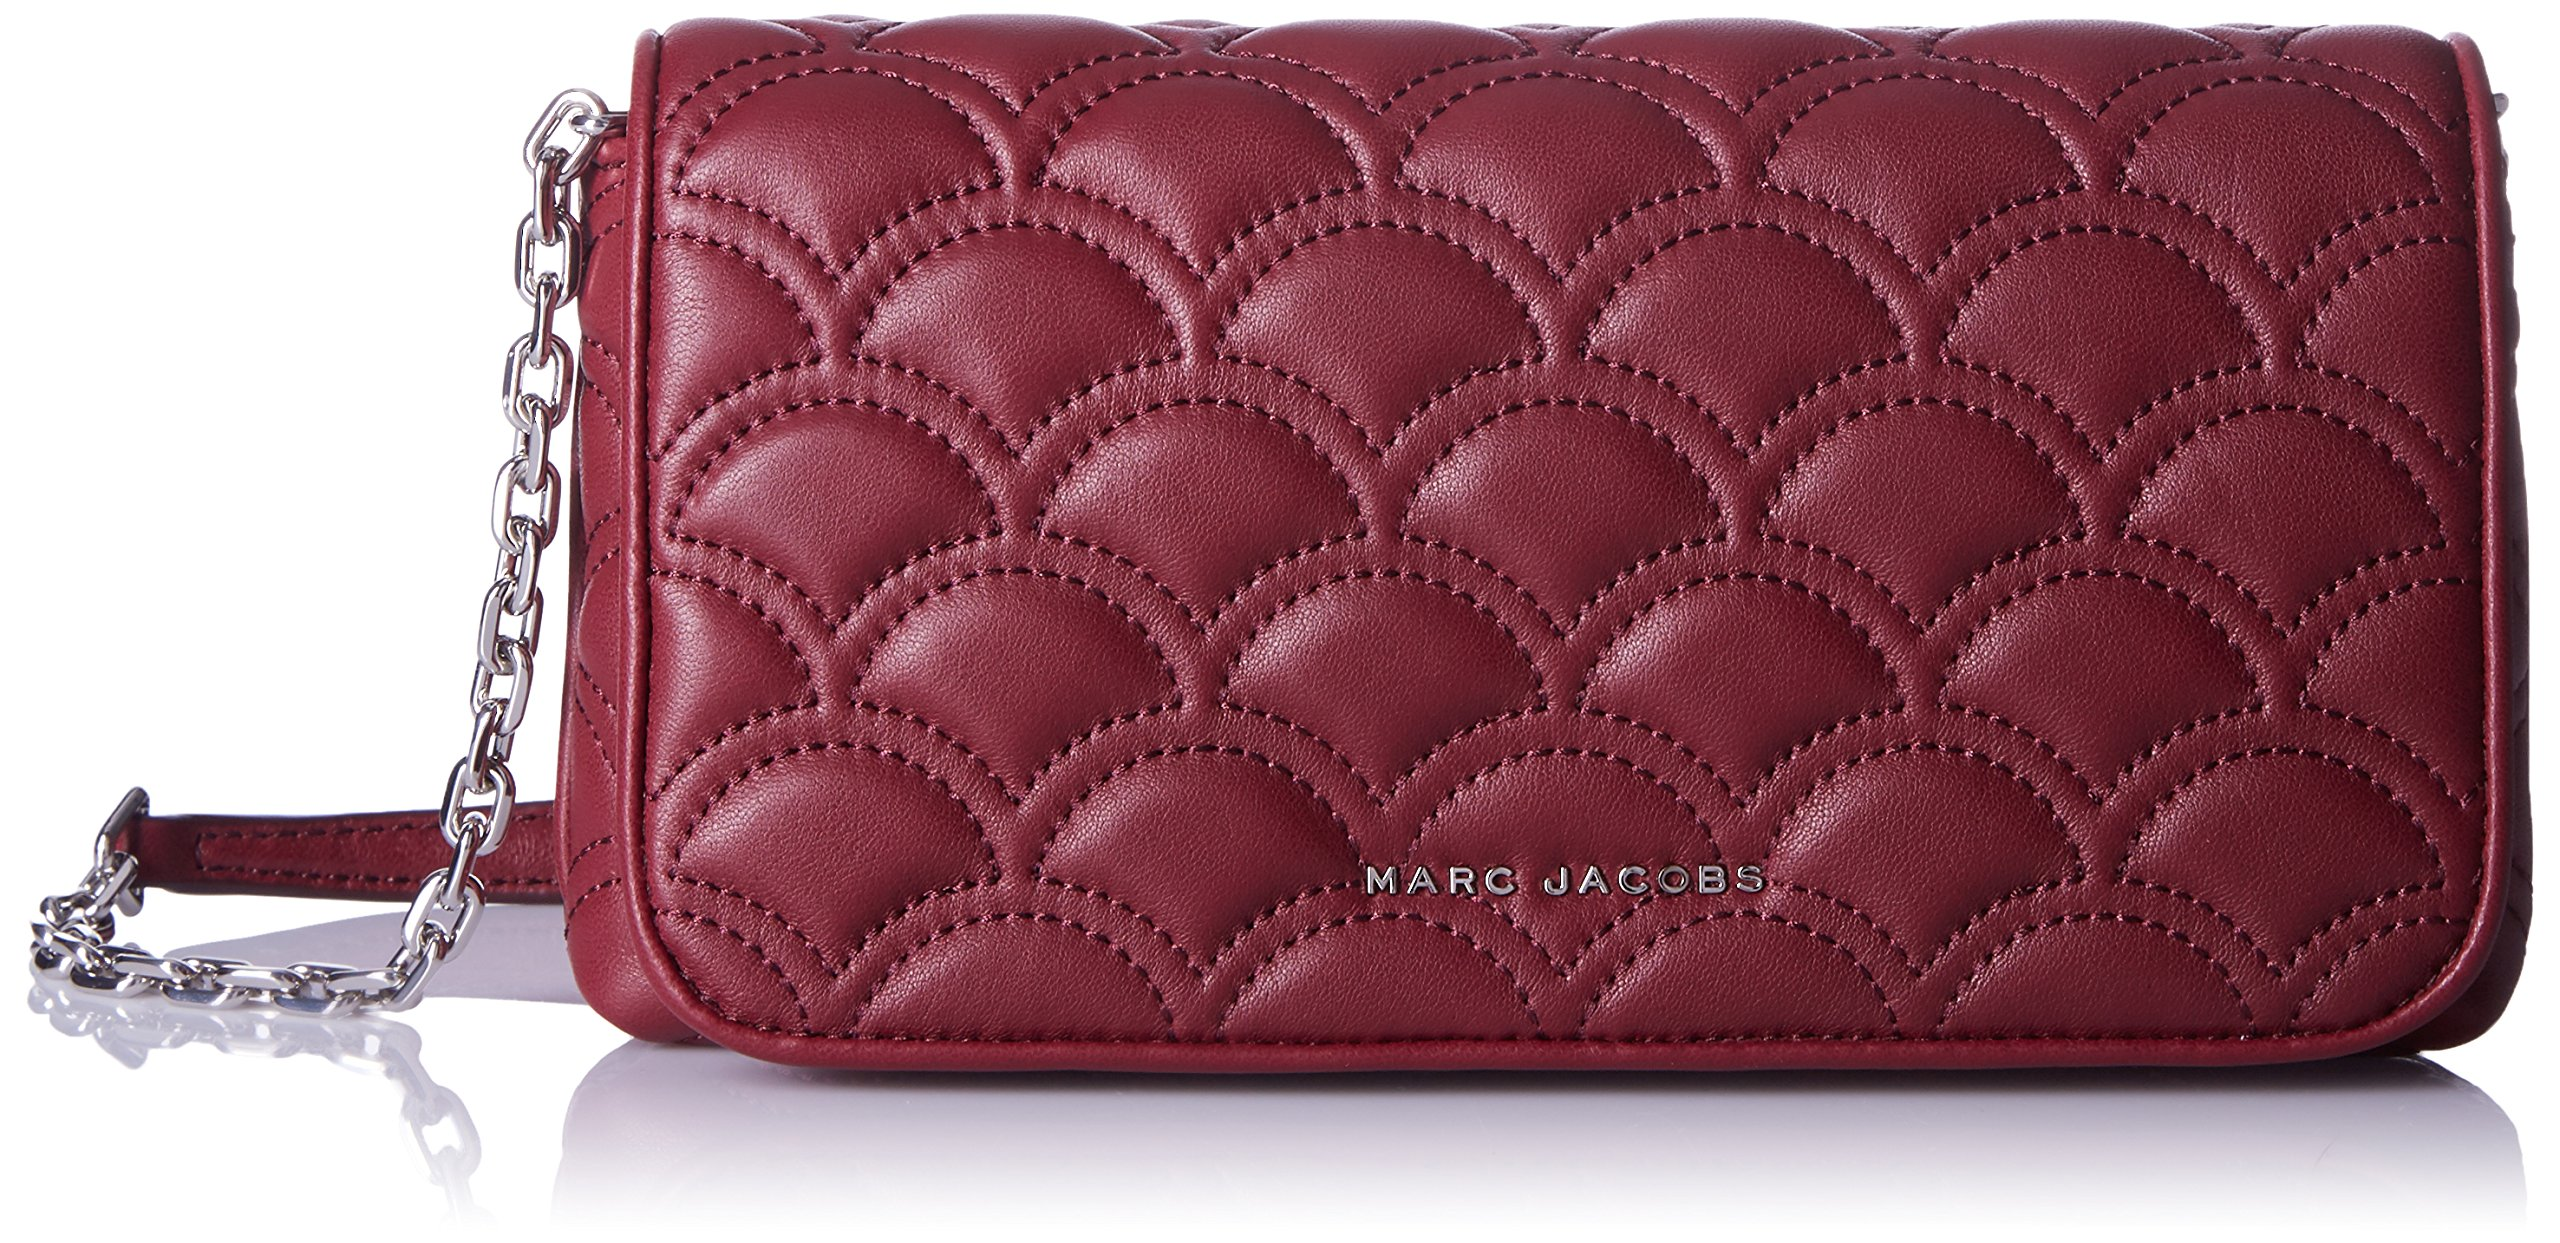 Marc Jacobs Matelasse On Crossbody Chain Wallet, Deep Maroon, One Size by Marc Jacobs